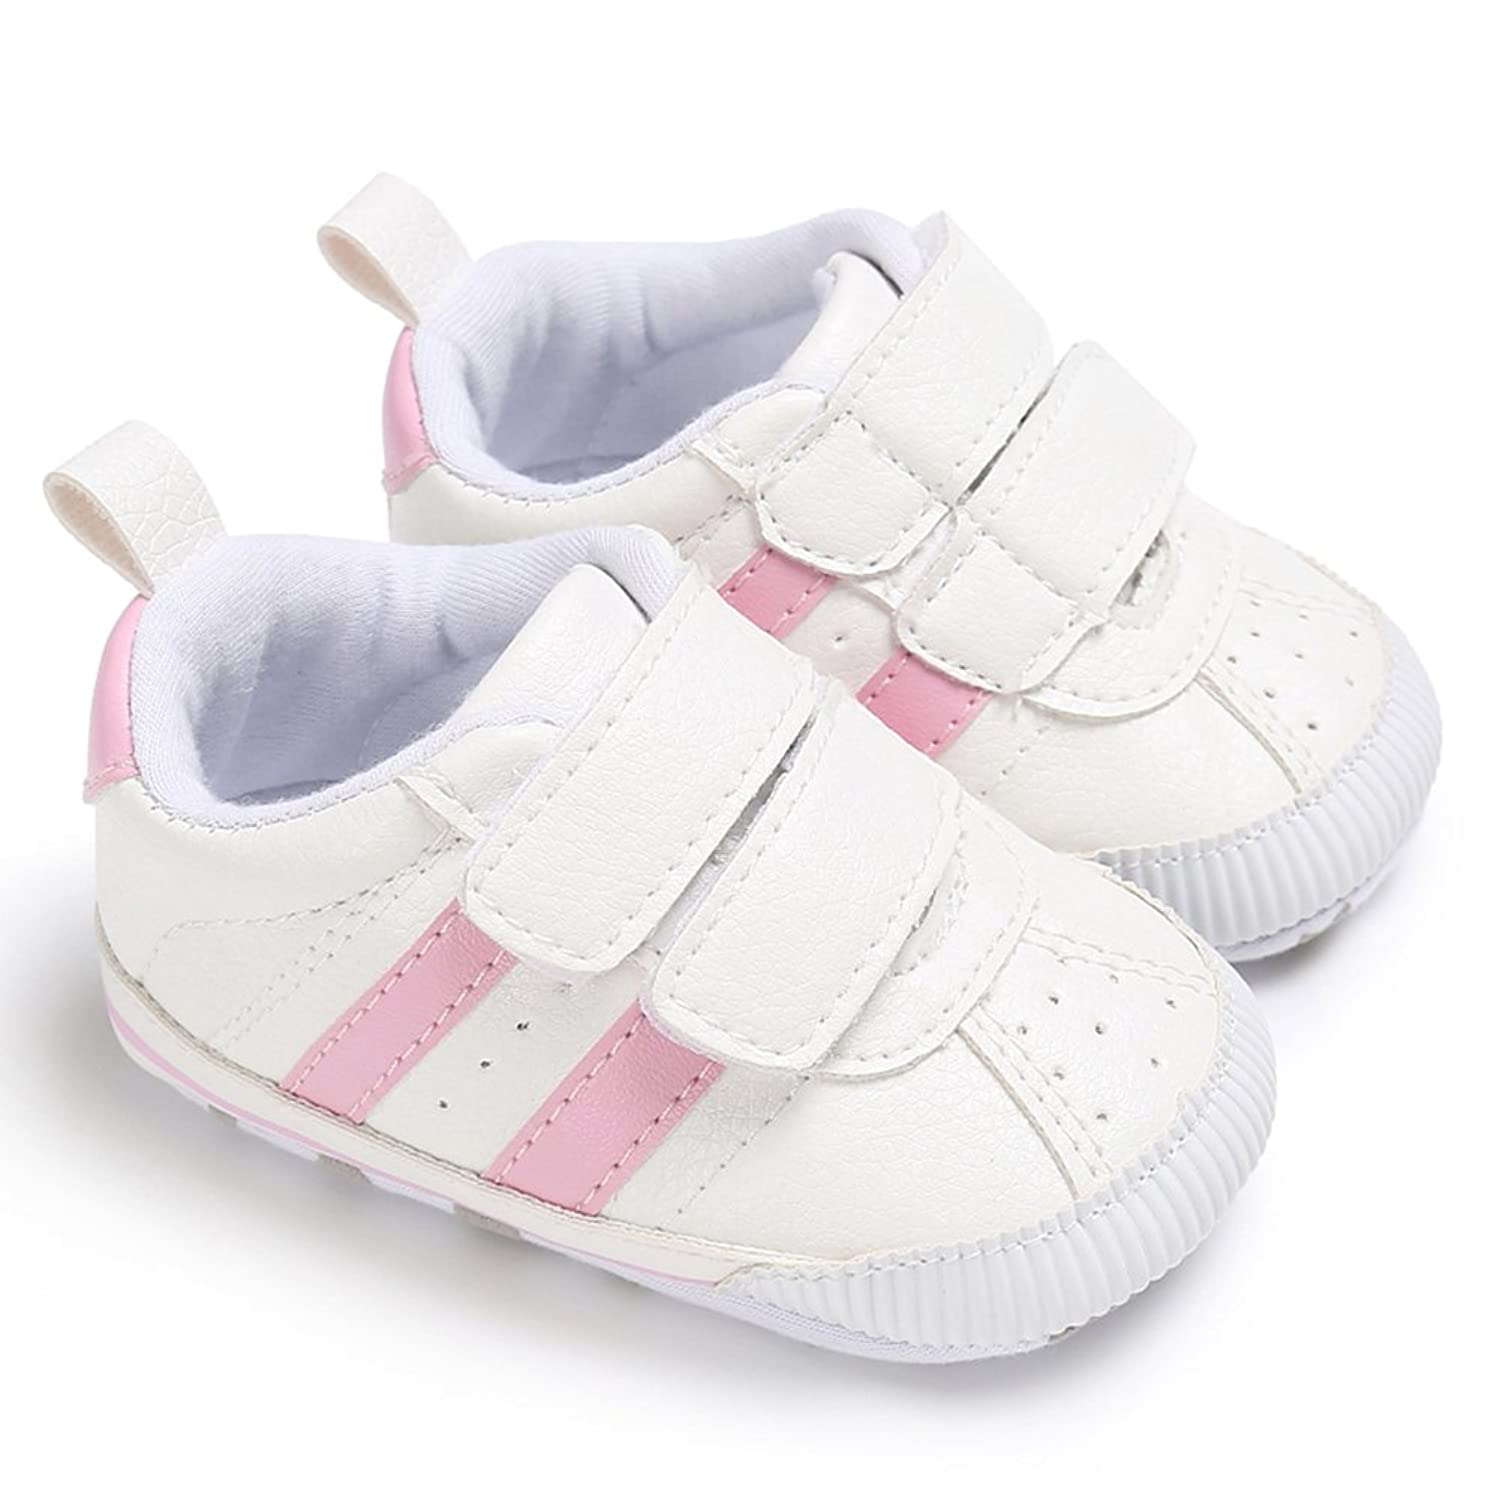 00a62e4b293dd OOSAKU Baby Boy Infant Newborn Soft Sole Leather Sneakers First ...